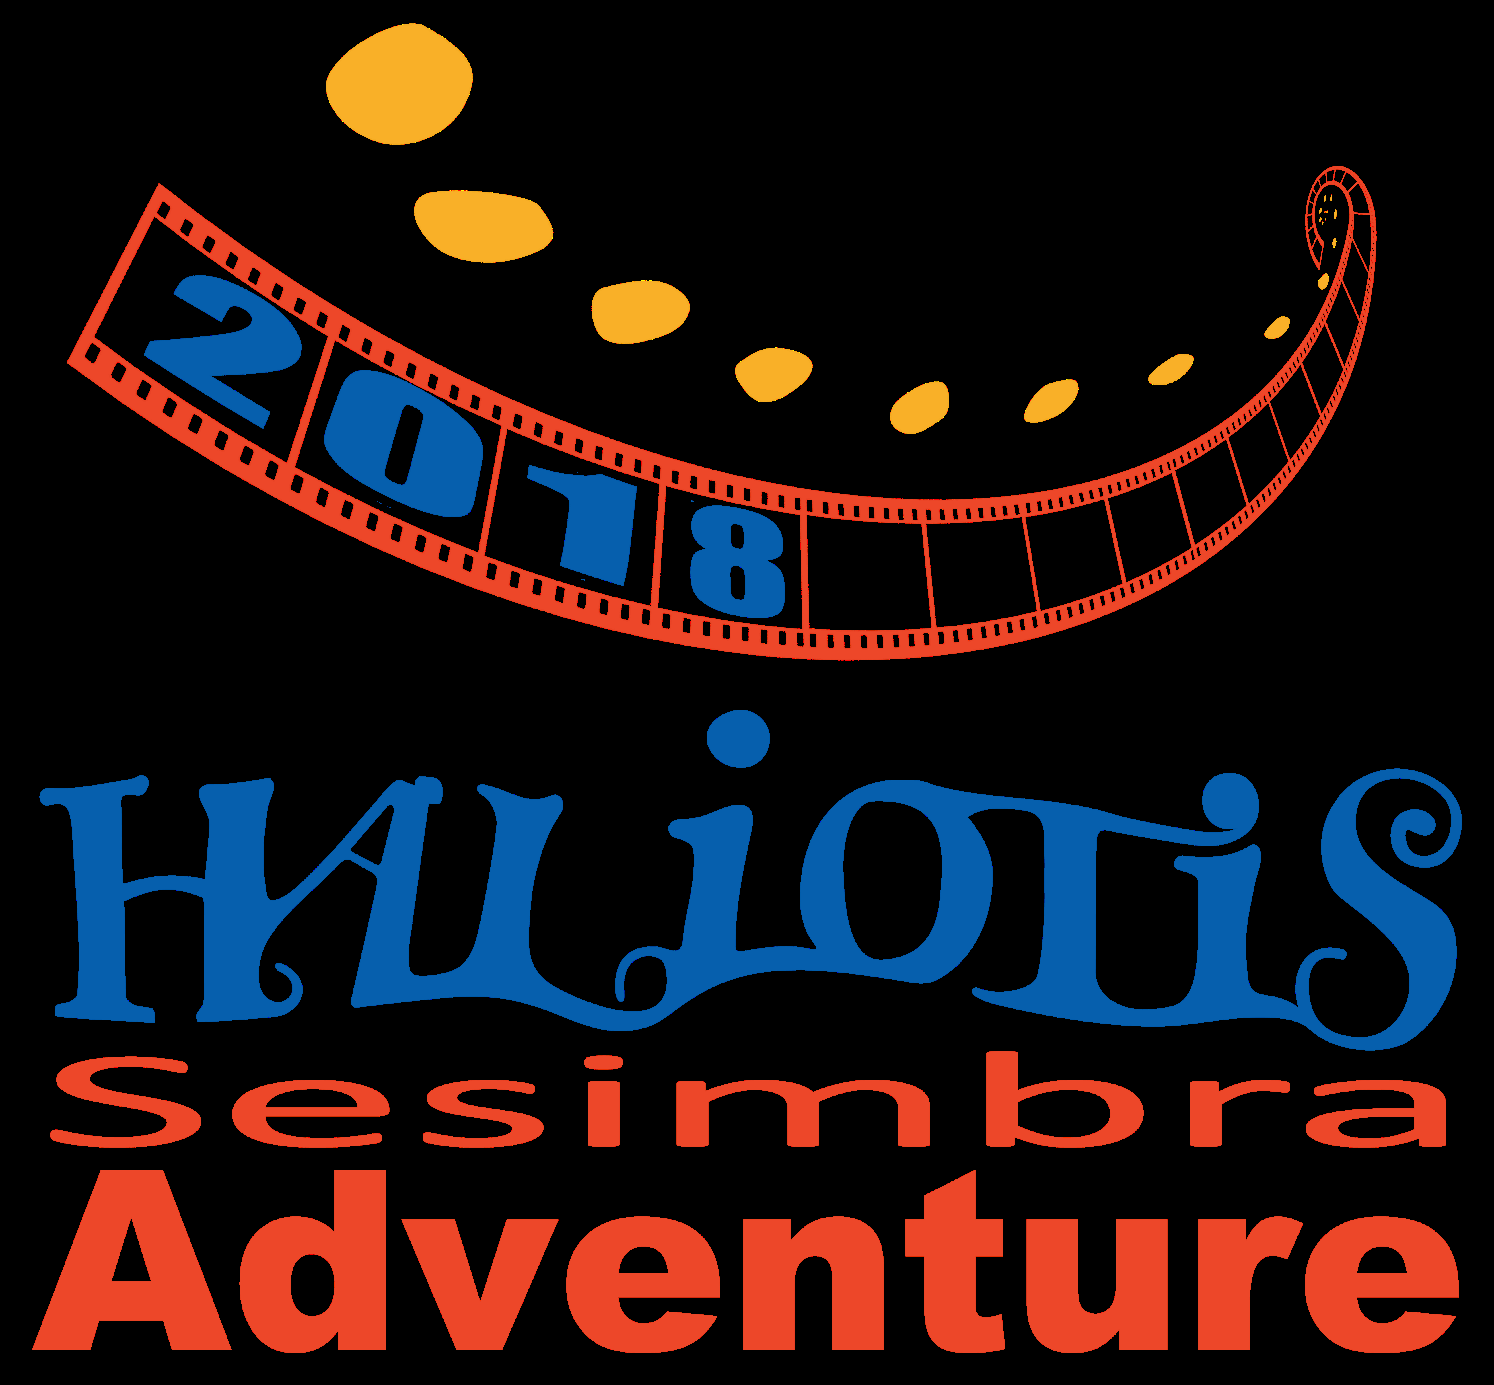 HALIOTIS SESIMBRA ADVENTURE 2018